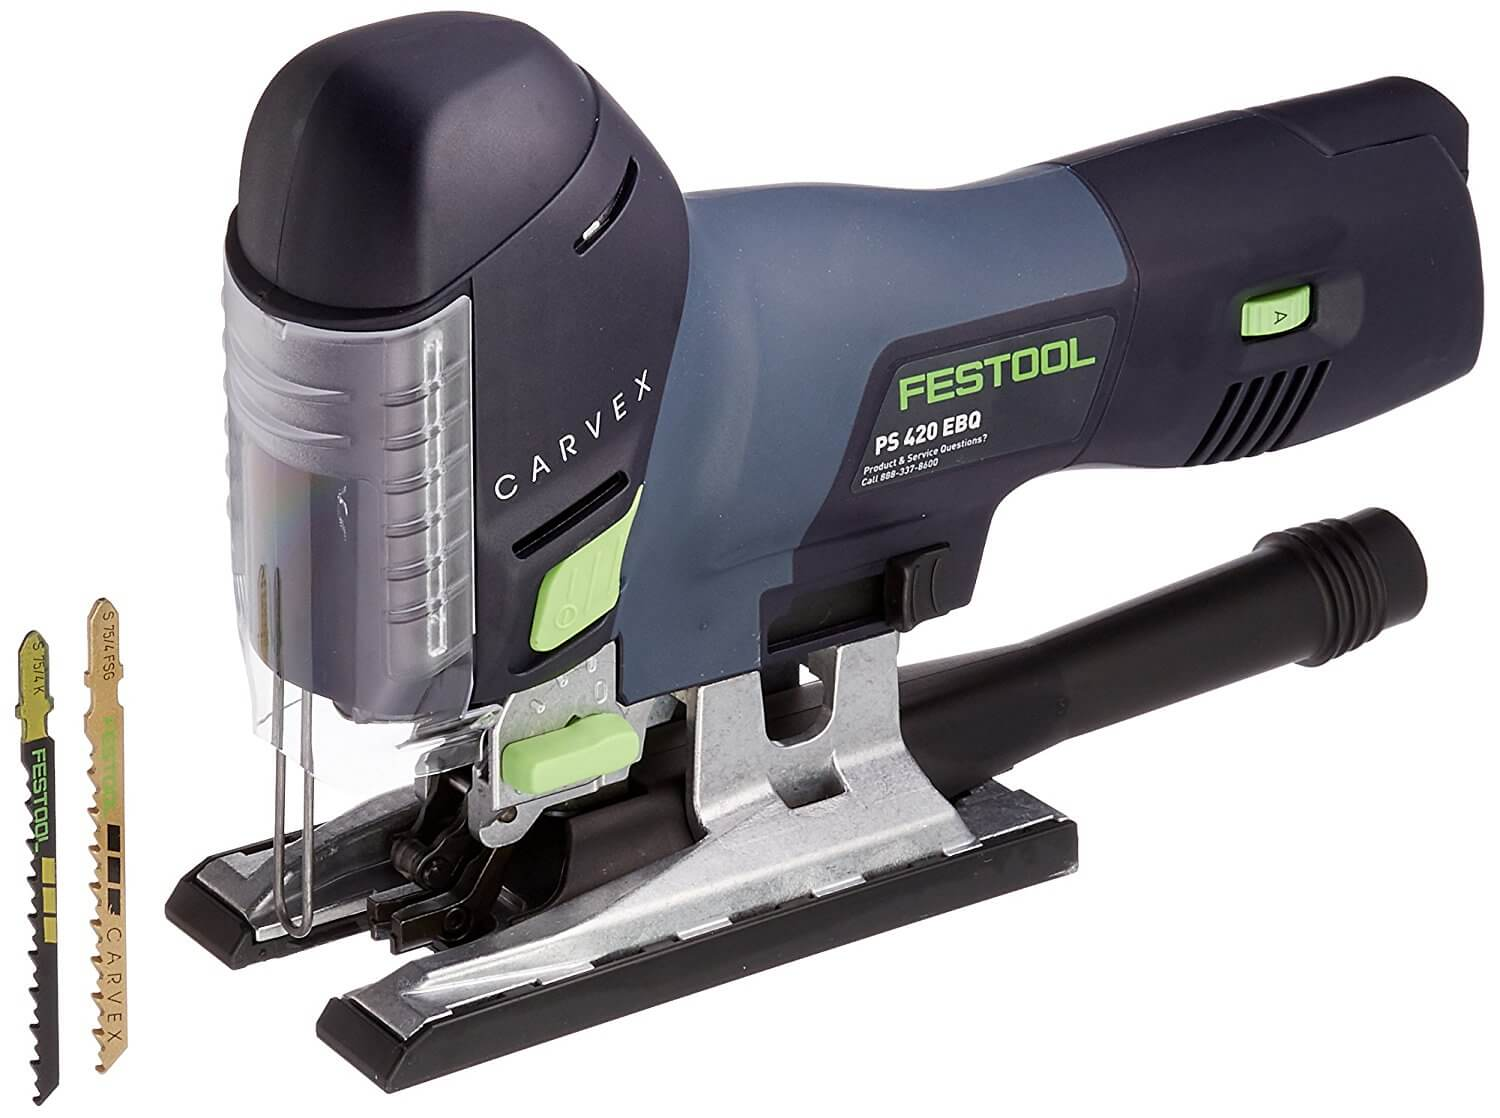 http://mitersawjudge.com/wp-content/uploads/2017/04/Festool-561593-Carvex-PS-420-Jigsaw